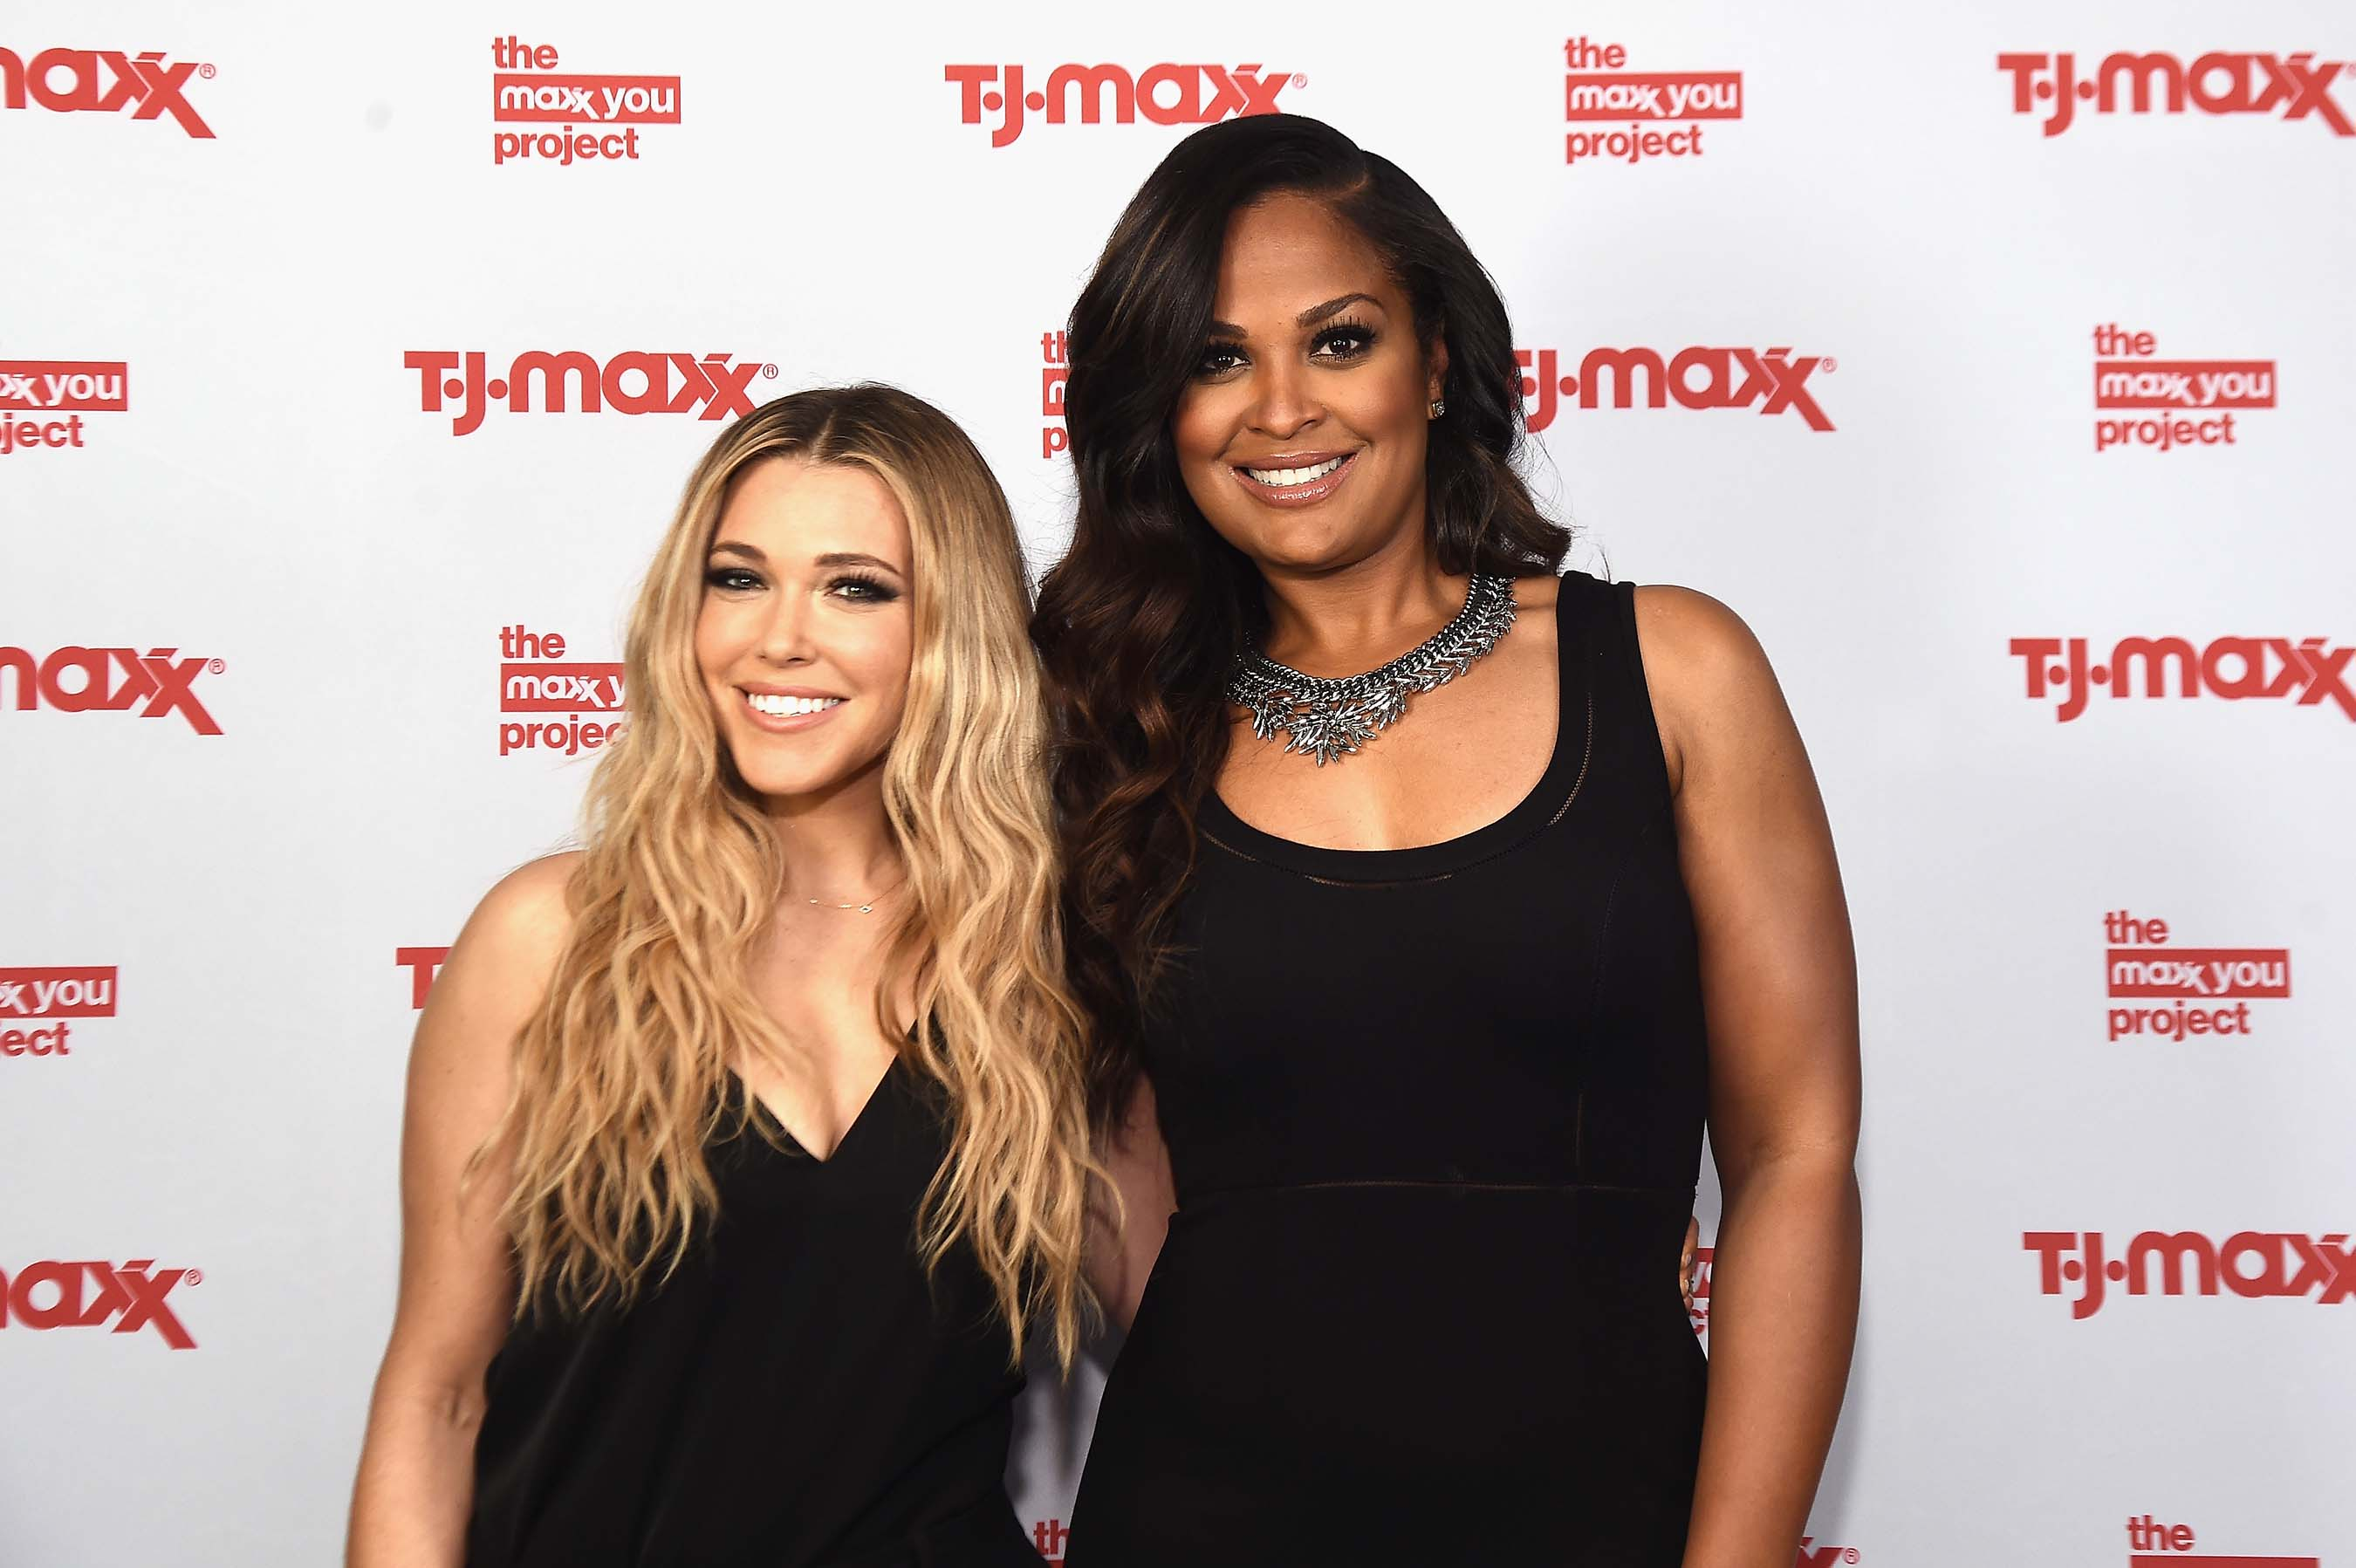 T.J.Maxx Teams Up with Laila Ali and Barbara Corcoran to Help Women Pursue the Dreams and Aspirations That Make Them Unique